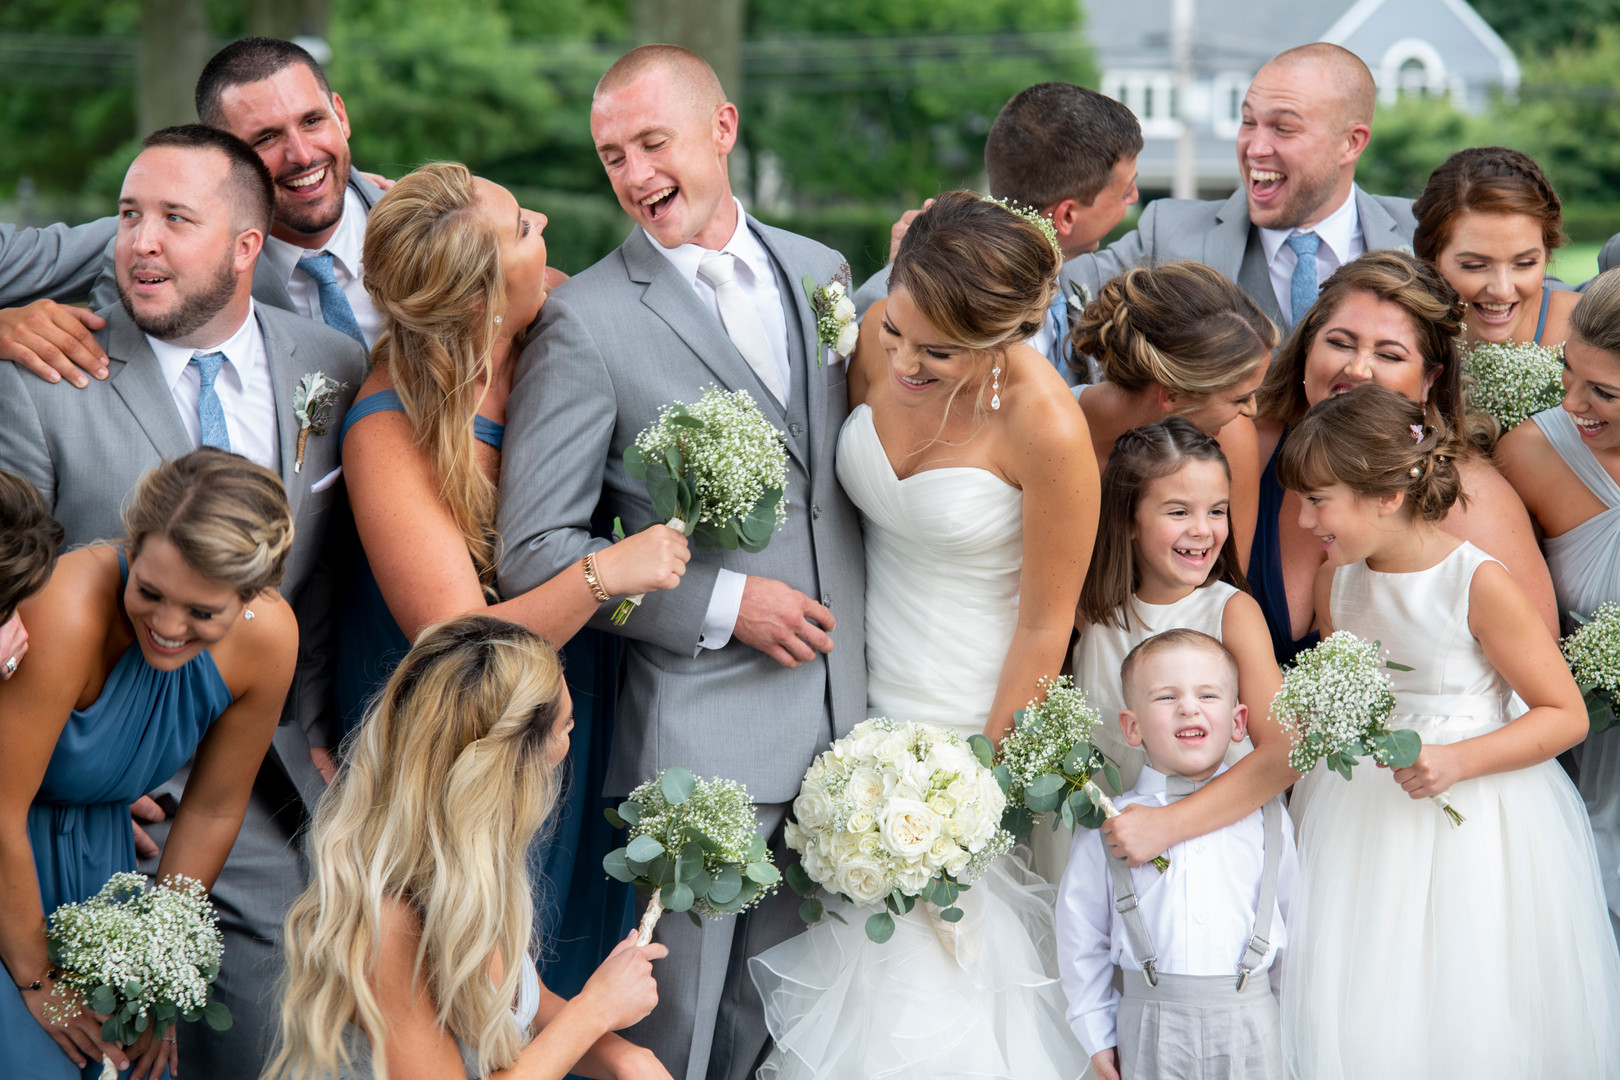 Joyful Bridal Party